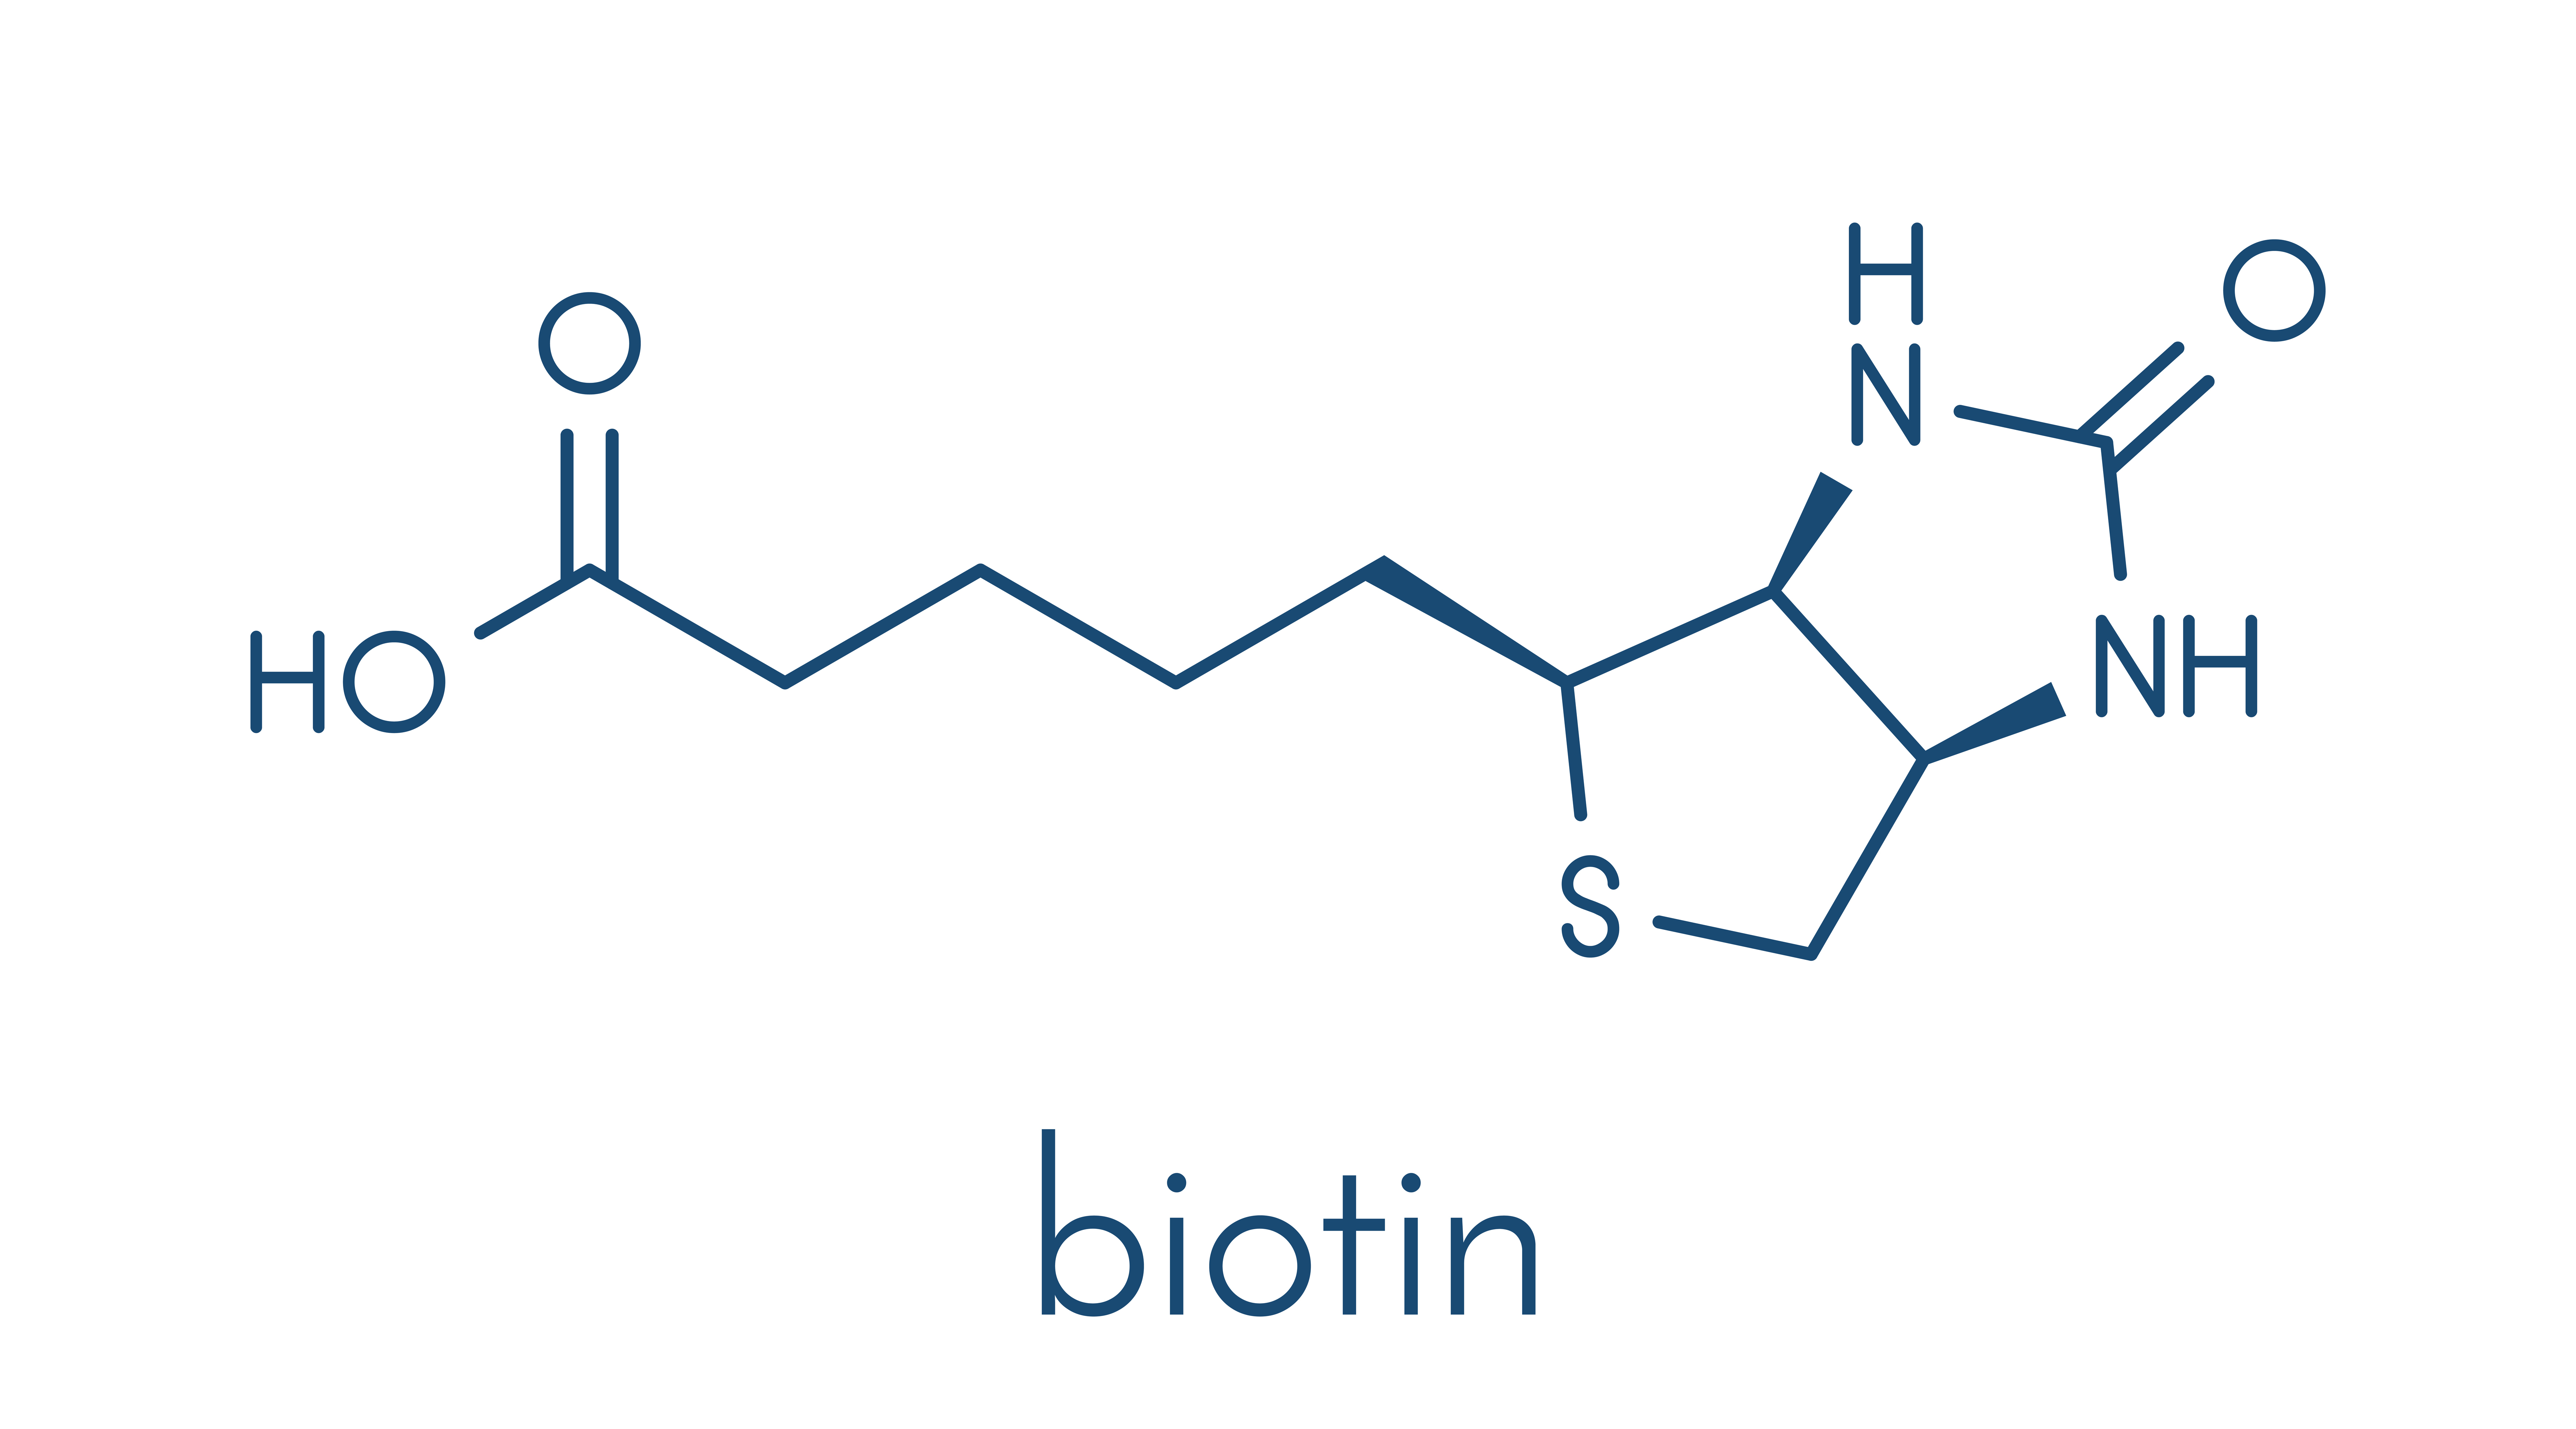 Biotin - chemical structure